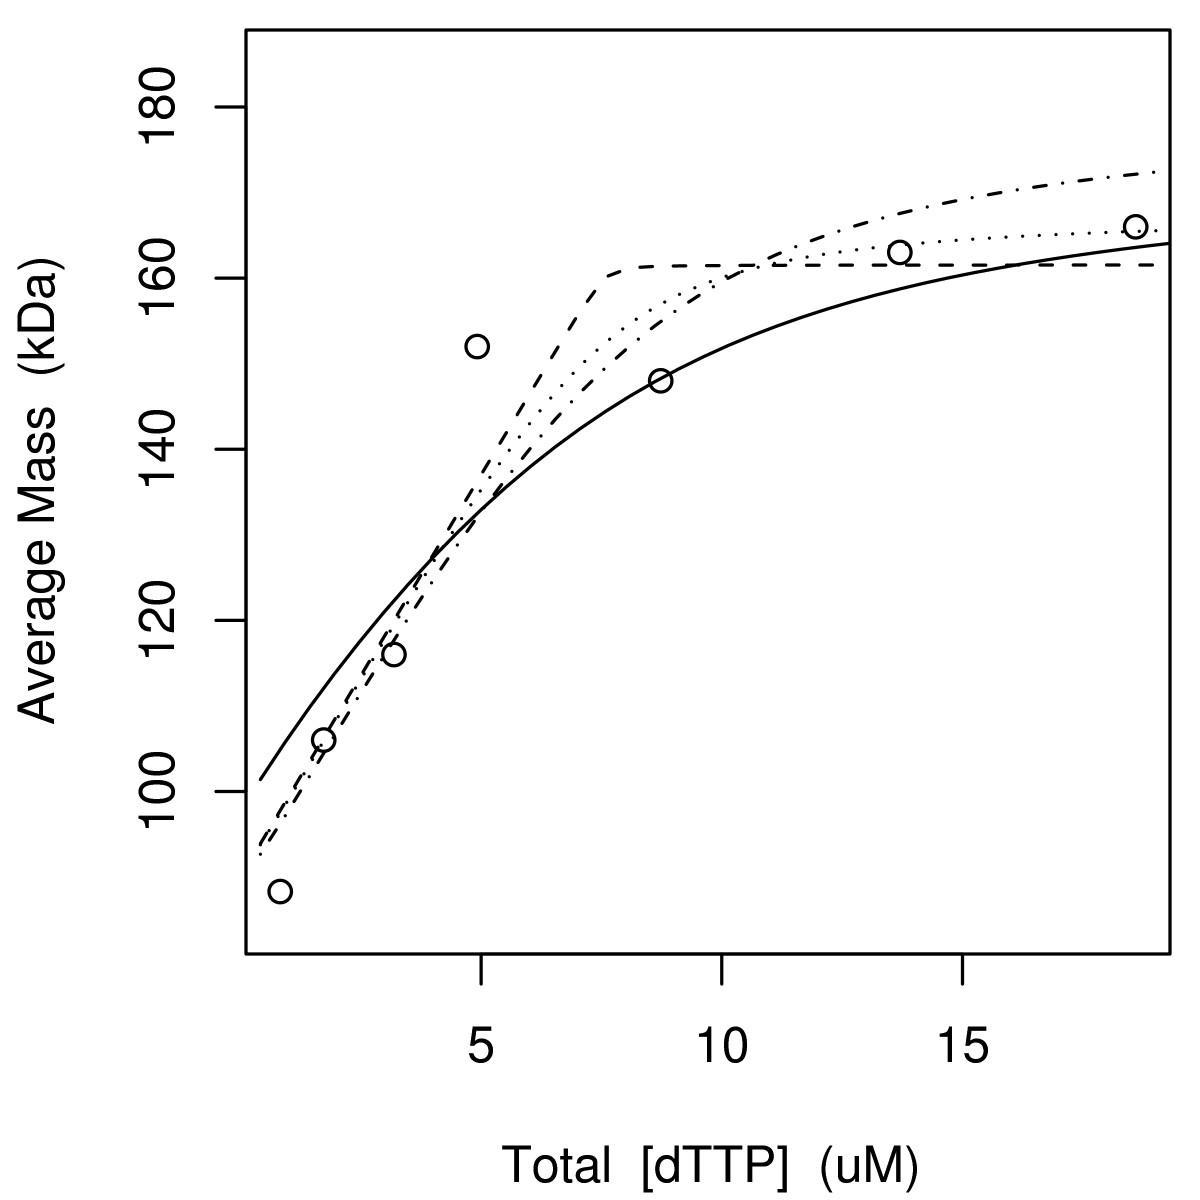 https://static-content.springer.com/image/art%3A10.1186%2F1752-0509-2-15/MediaObjects/12918_2007_Article_172_Fig4_HTML.jpg